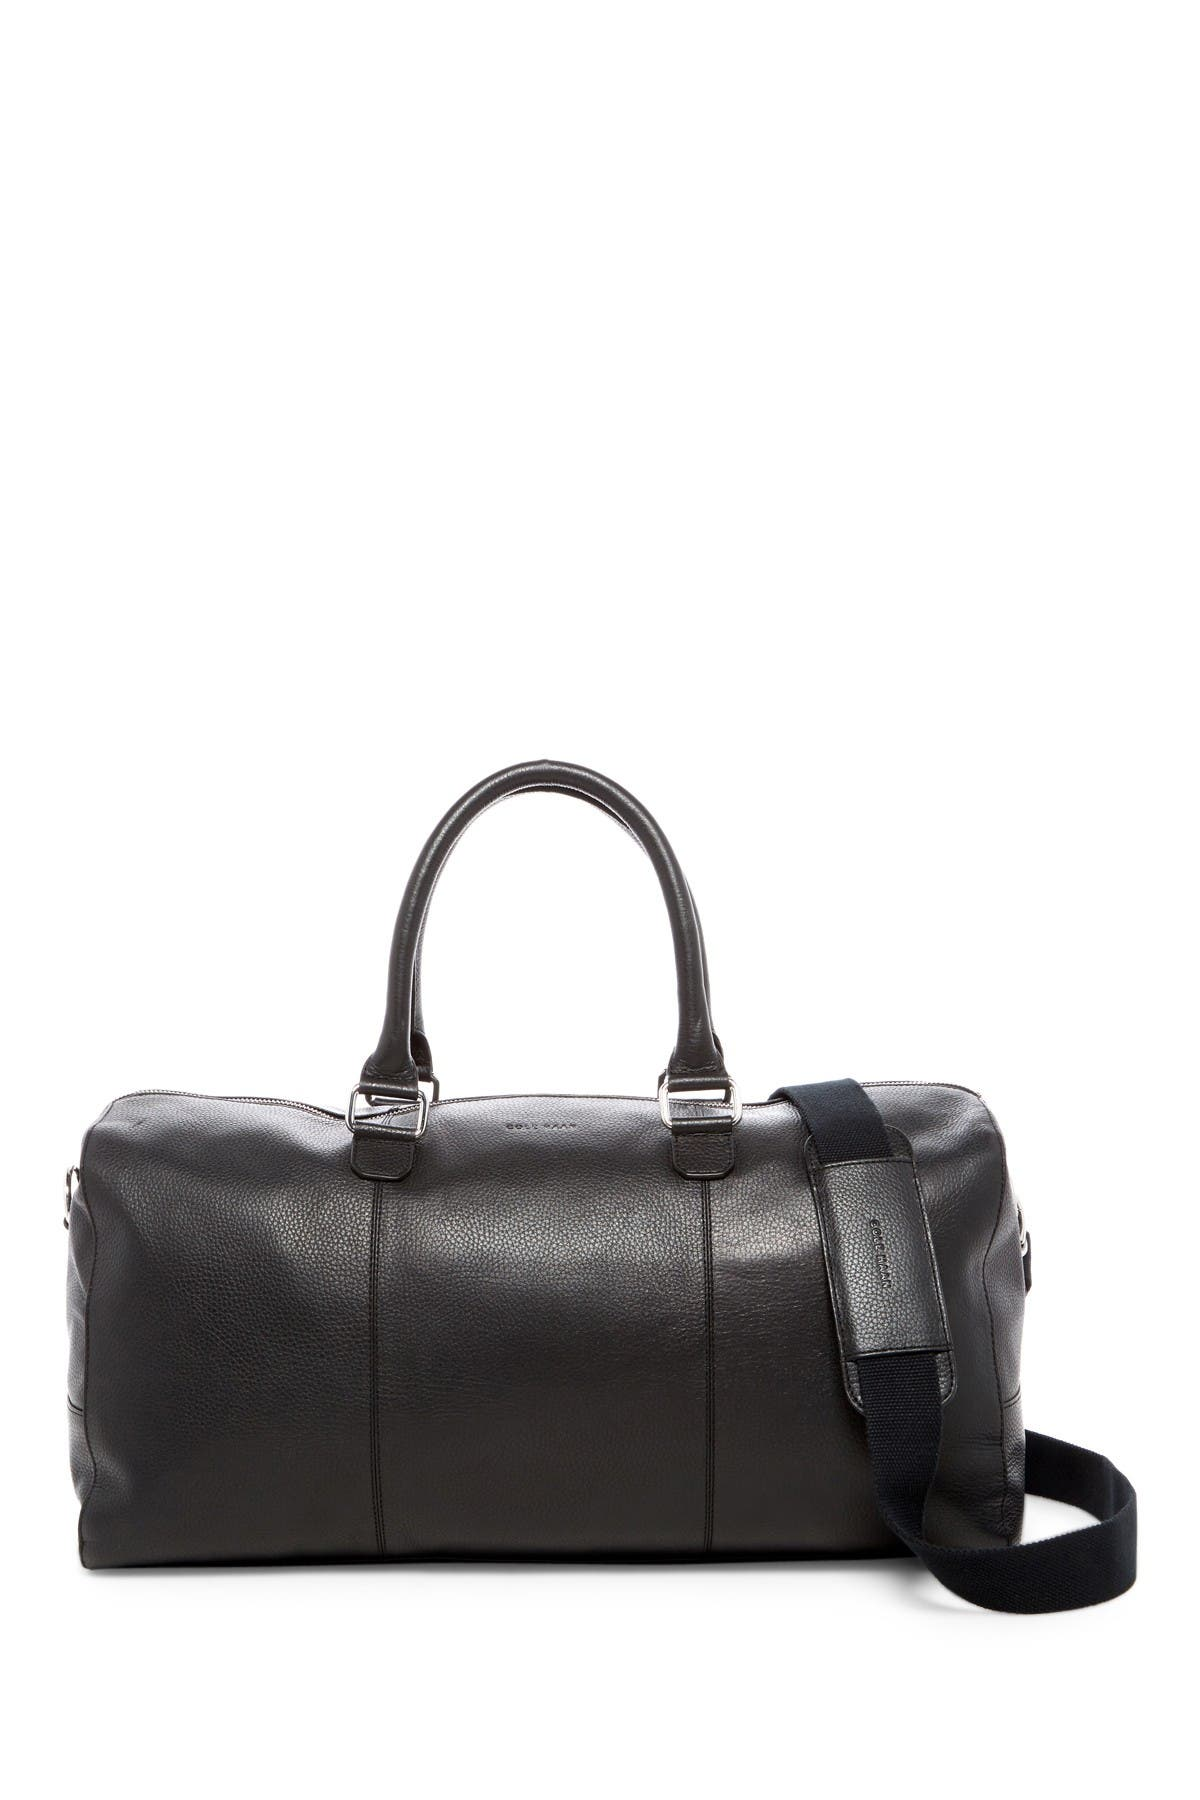 Image of Cole Haan Leather Duffel Bag